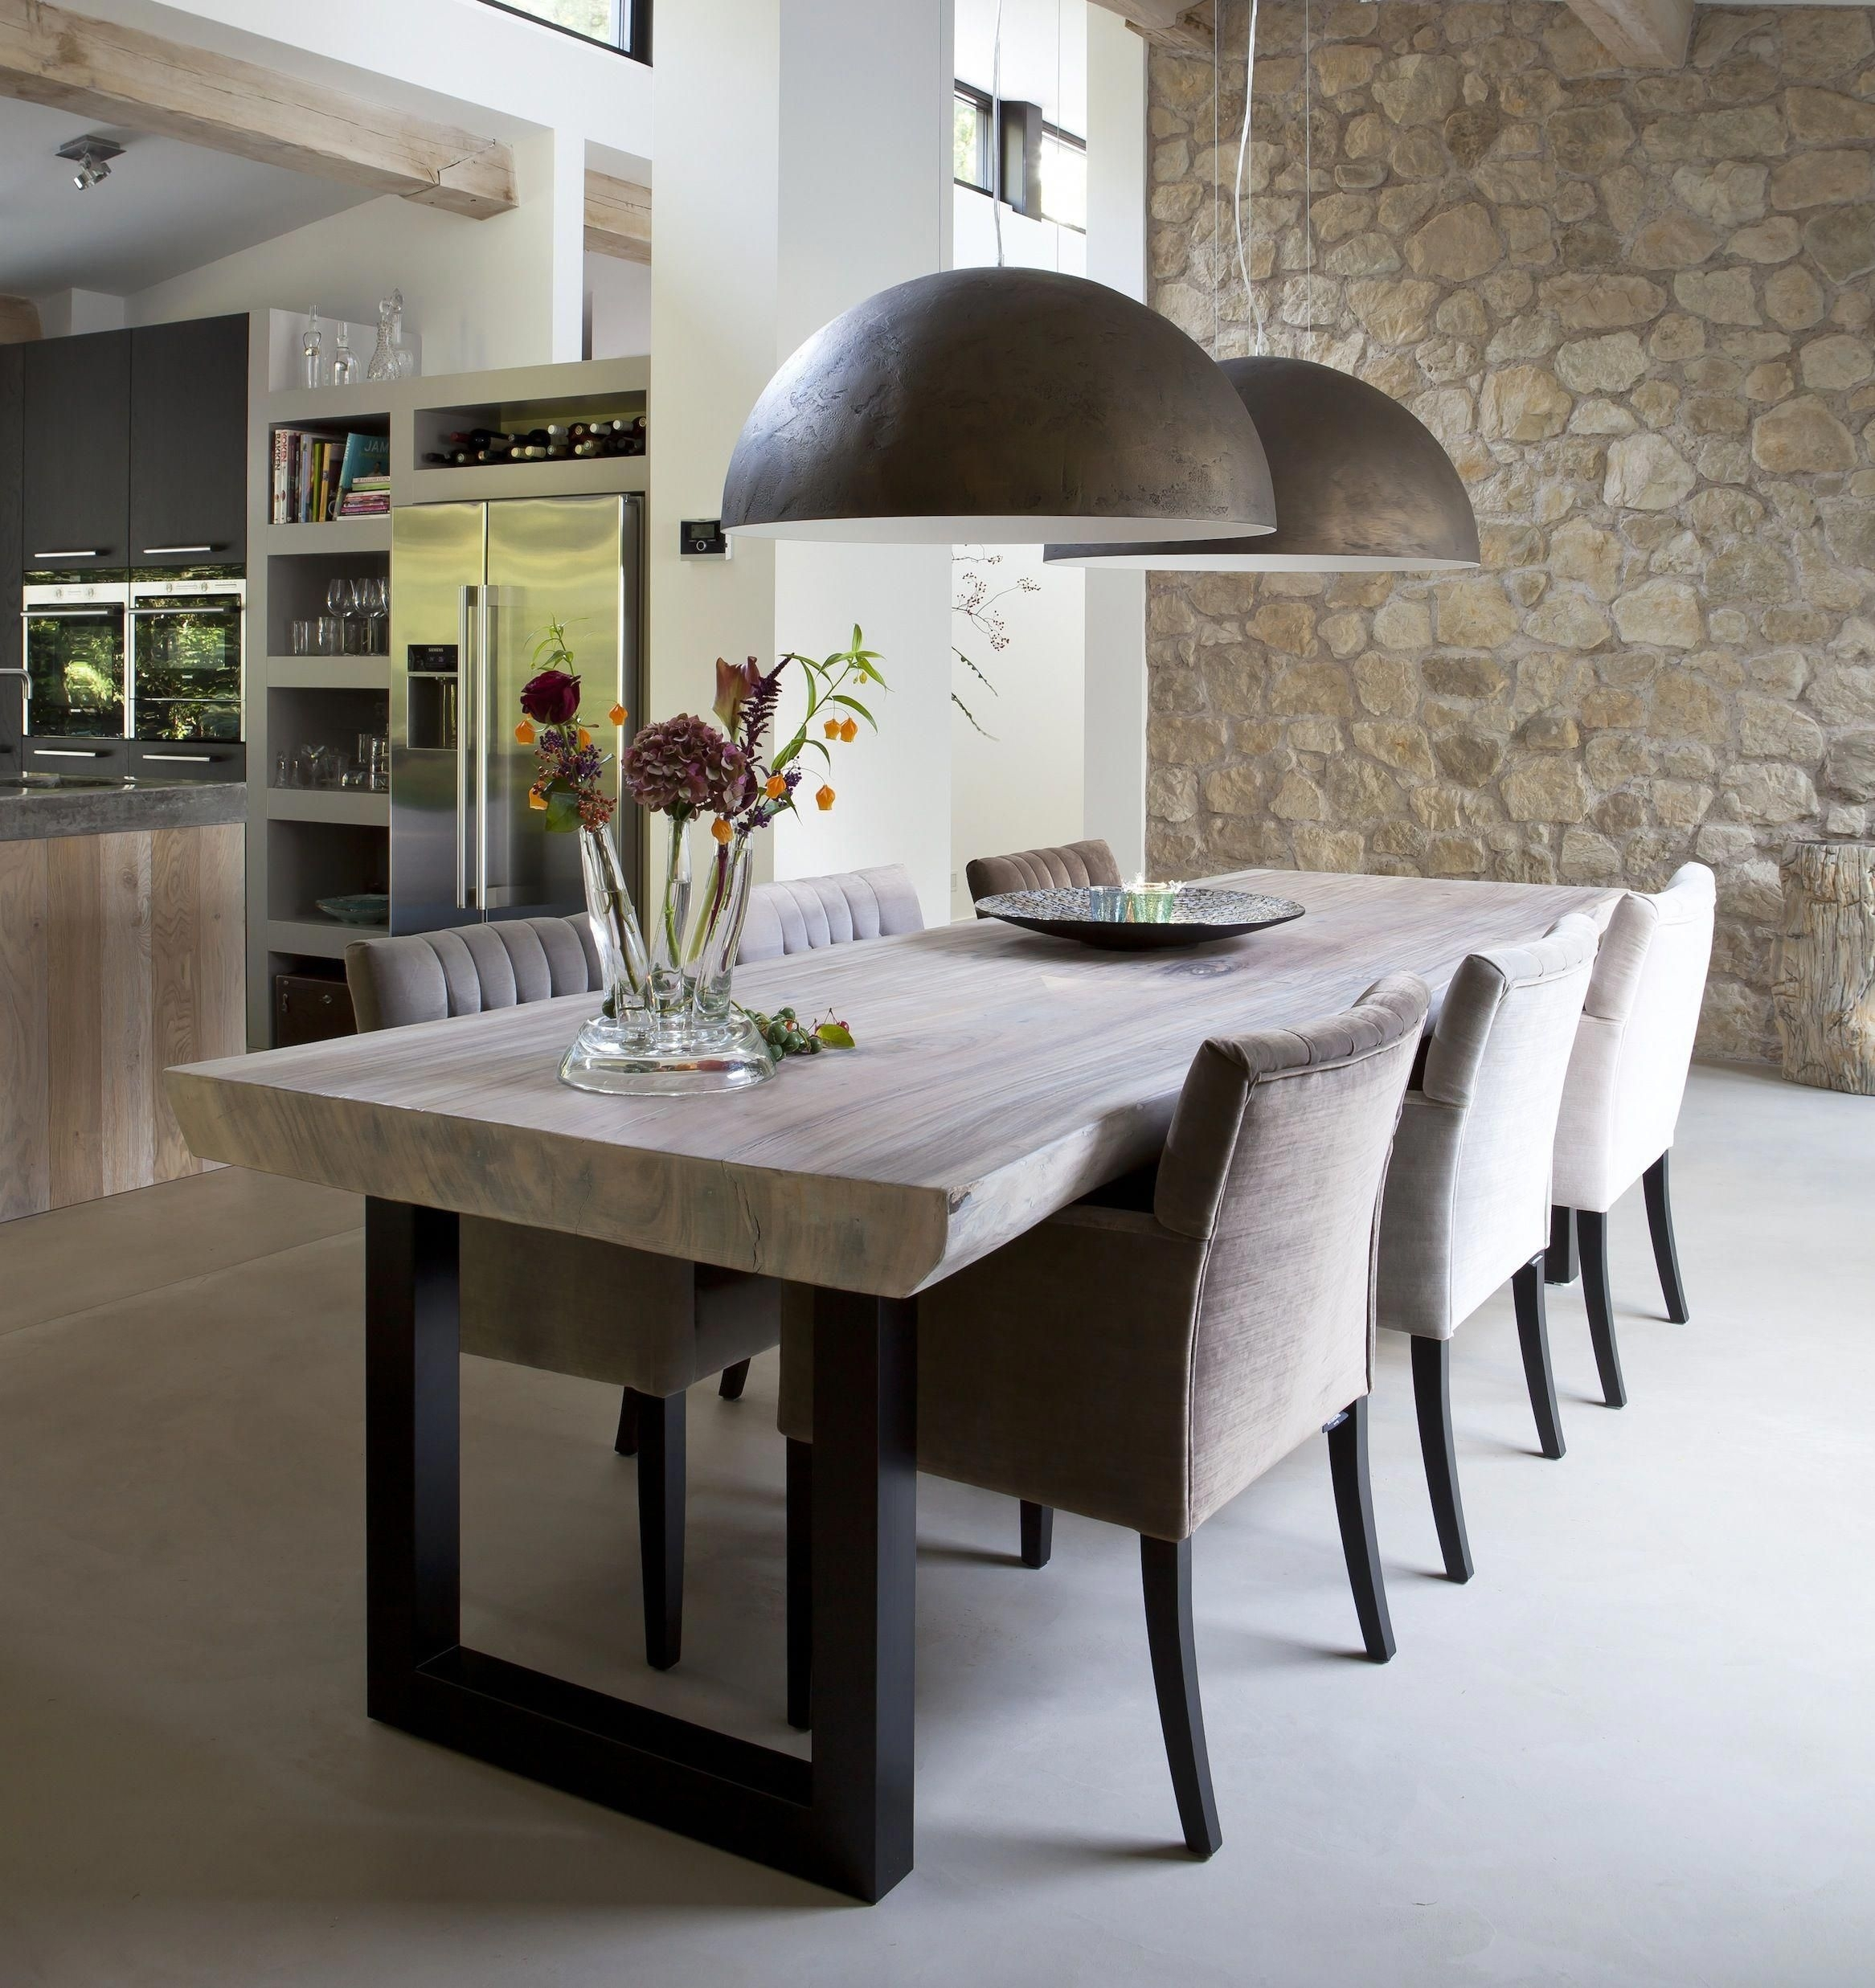 Picture of: Rustic Industrial Dining Table Ideas On Foter